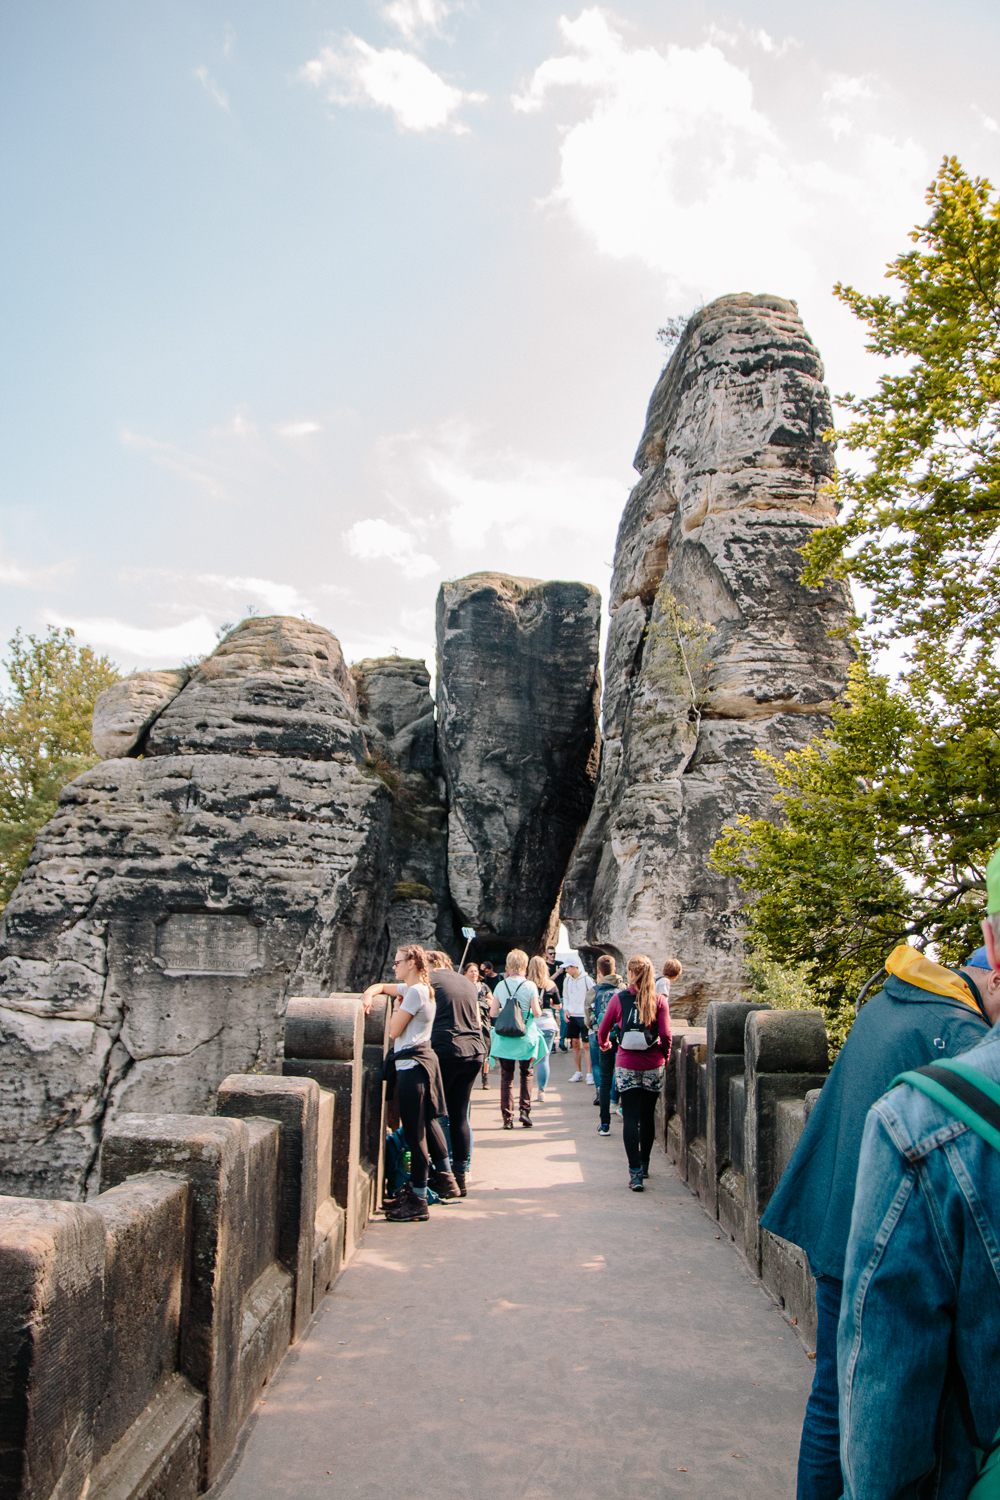 Walking across the The Bastei Bridge in Saxon Switzerland